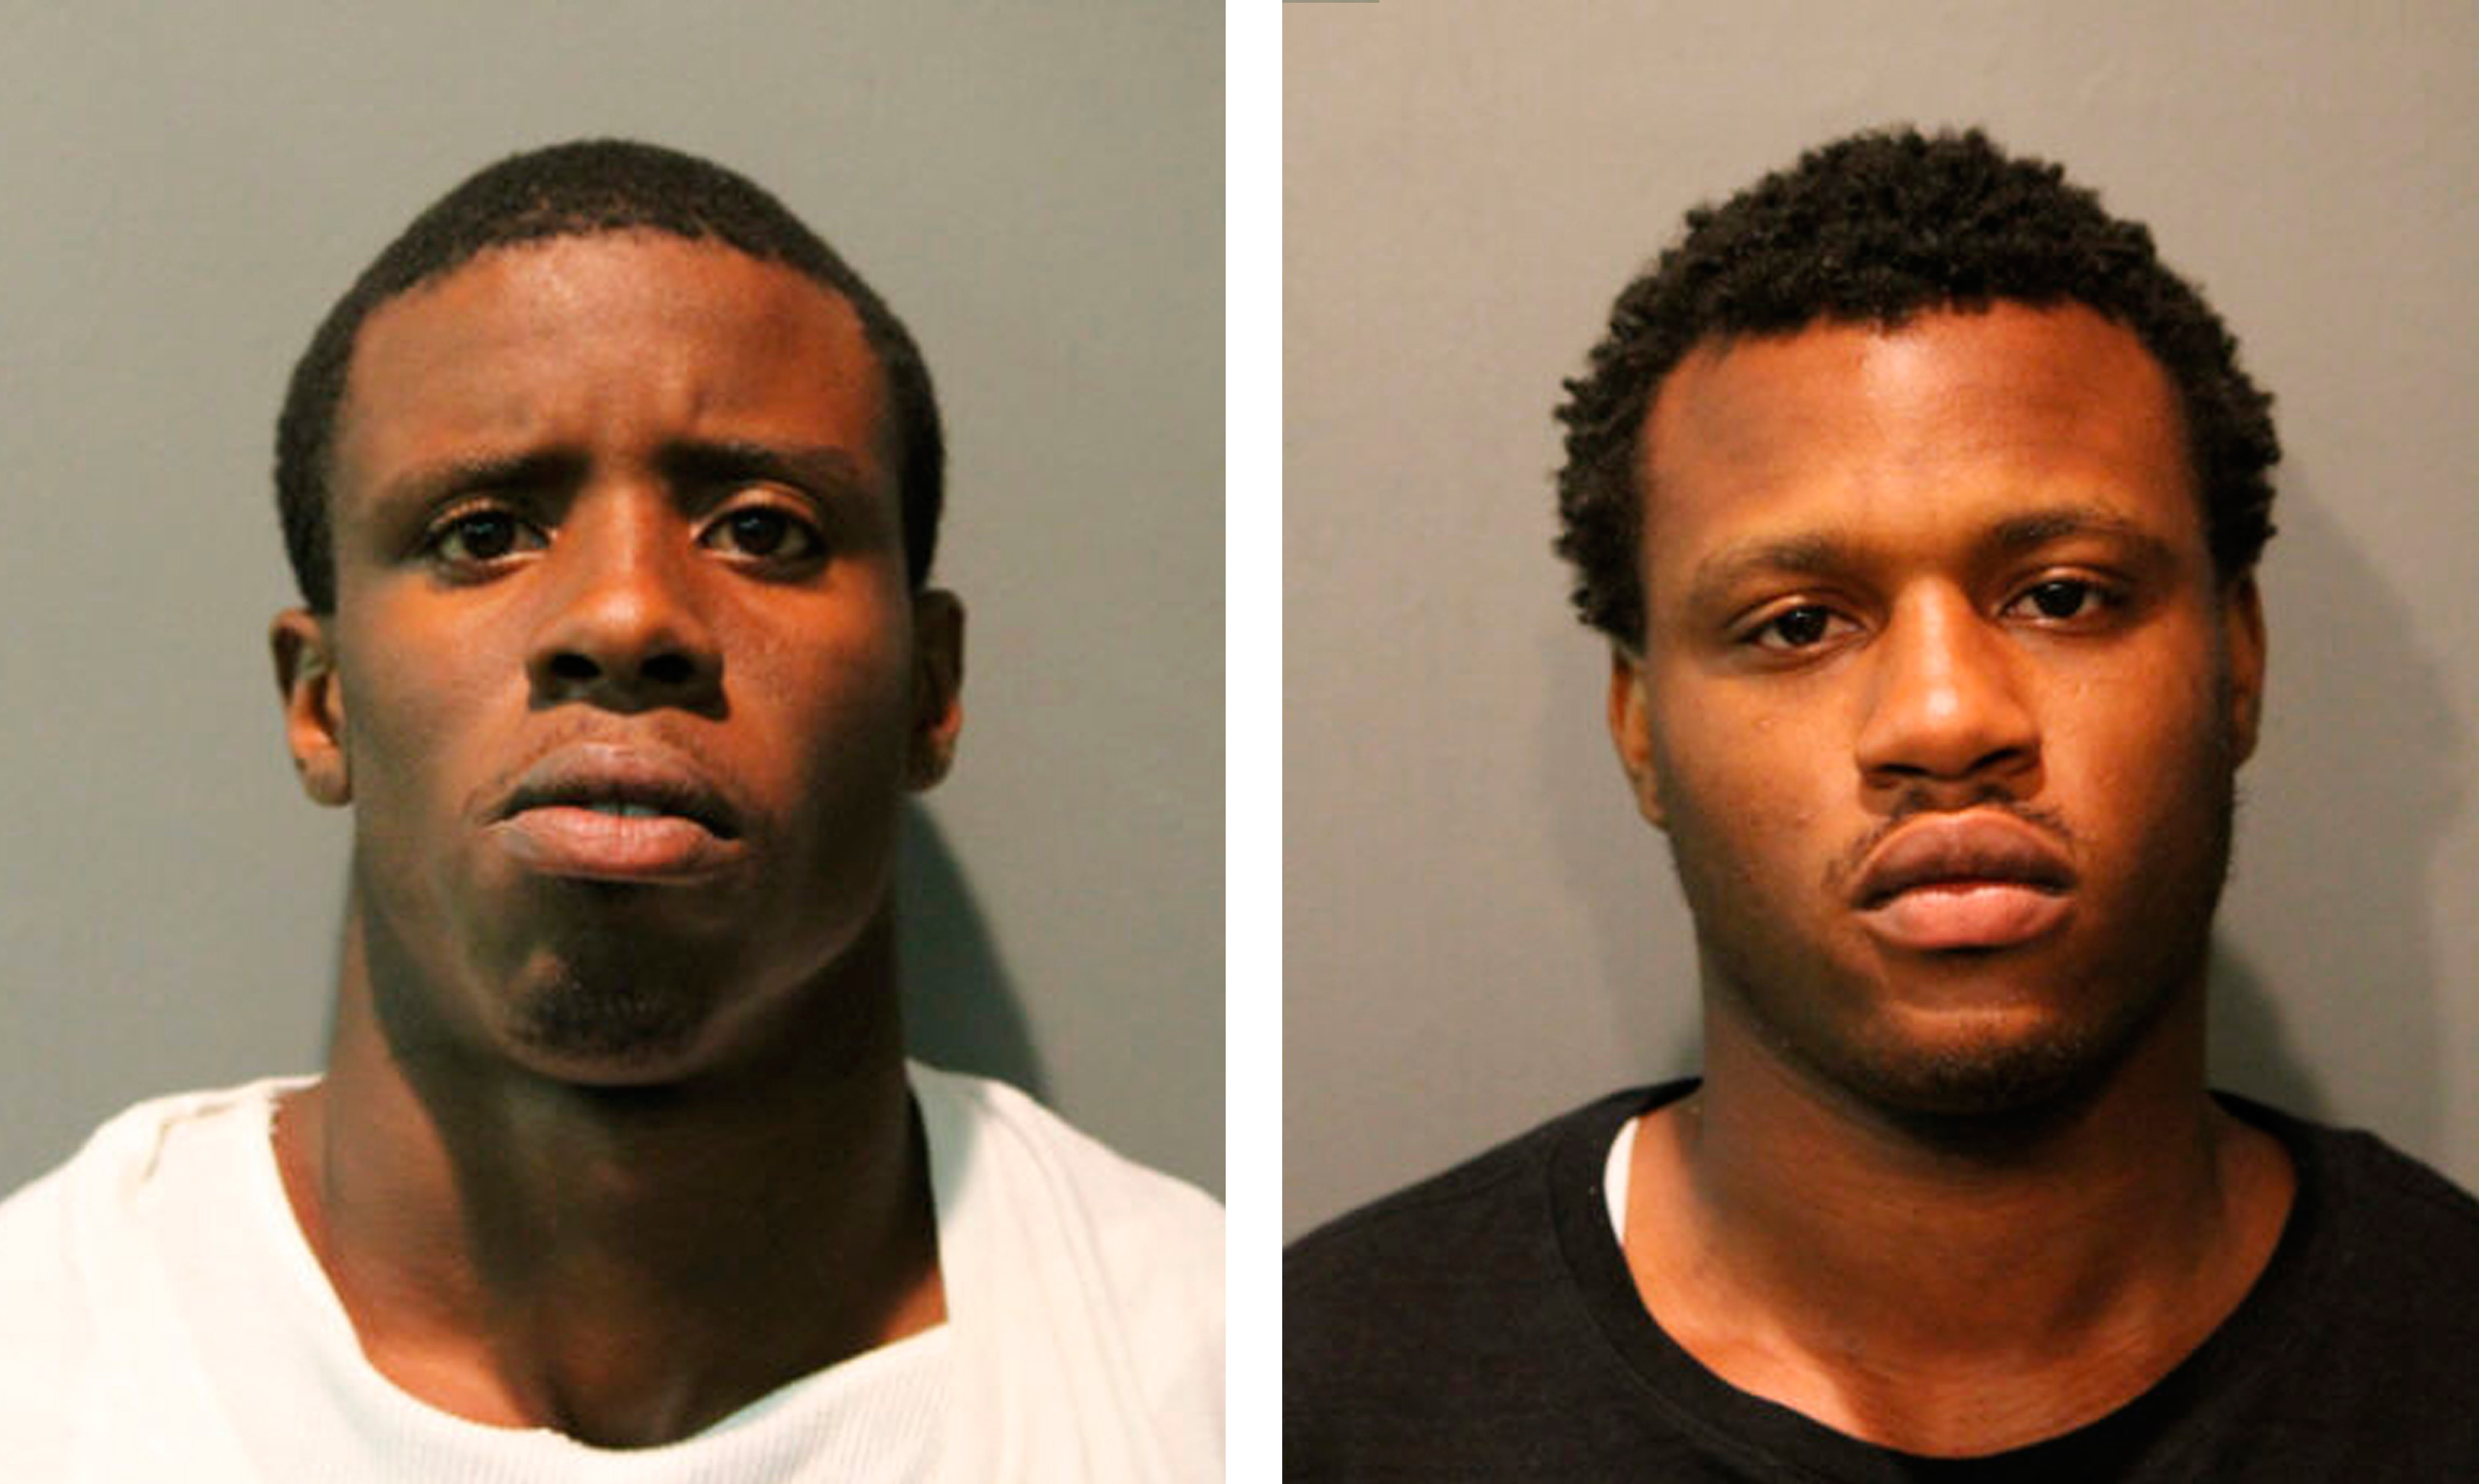 Brothers Darwin (left) and Derren Sorrells, in a photo provided by the Chicago Police Department.